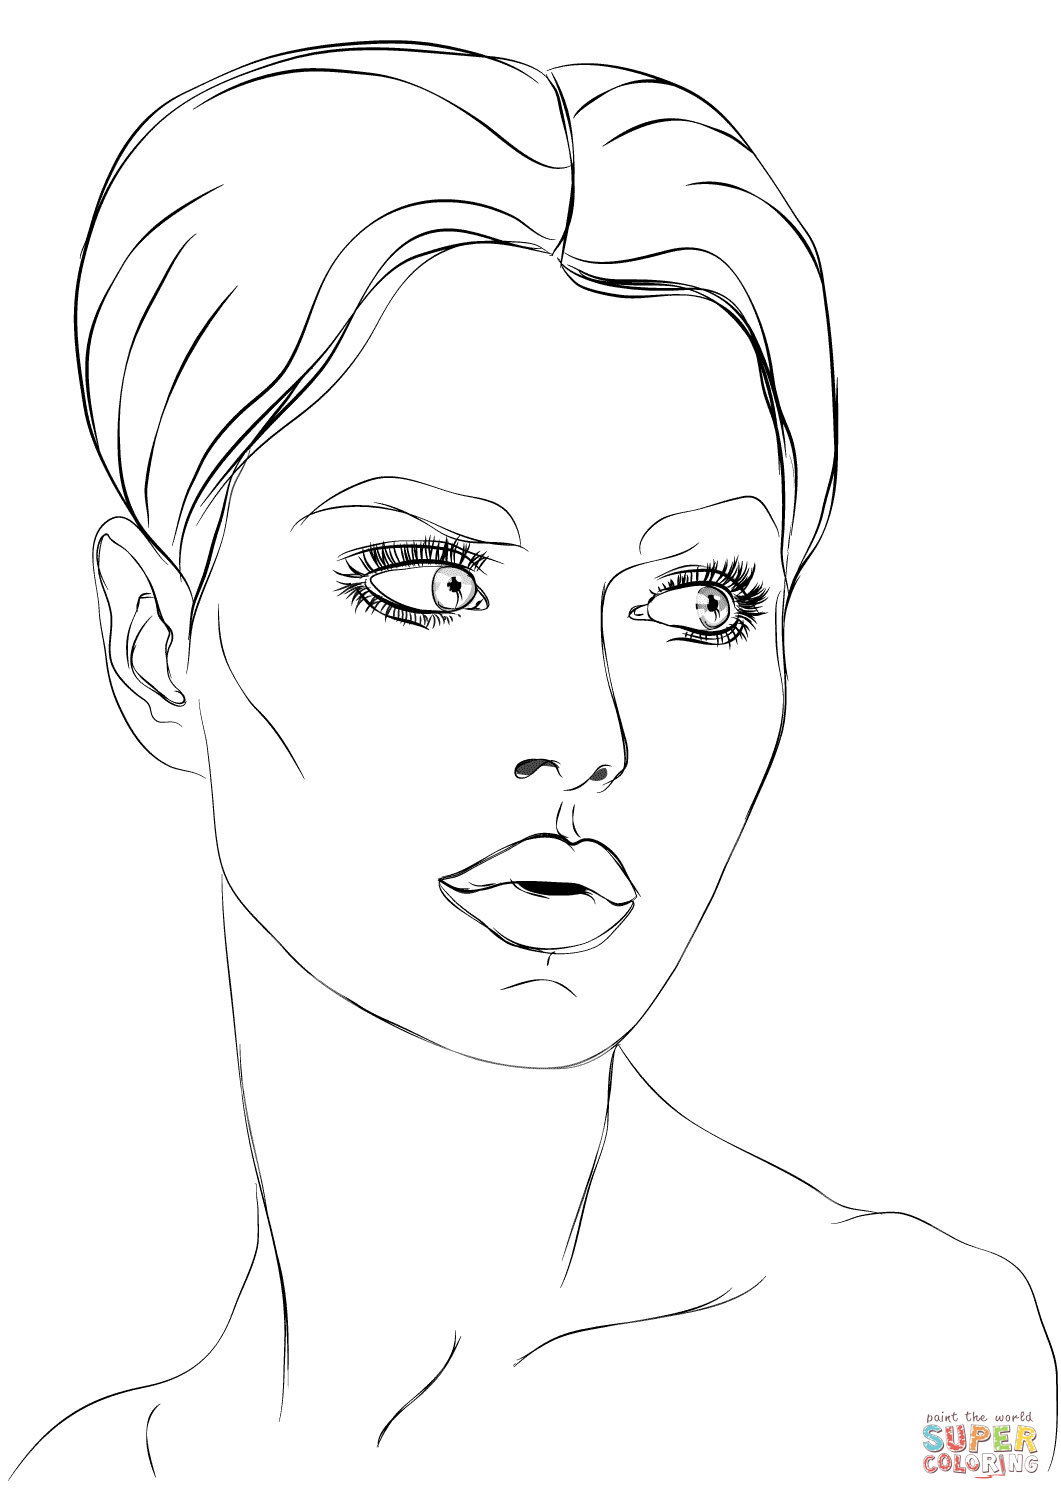 coloring face template blank head coloring page clipart best template face coloring